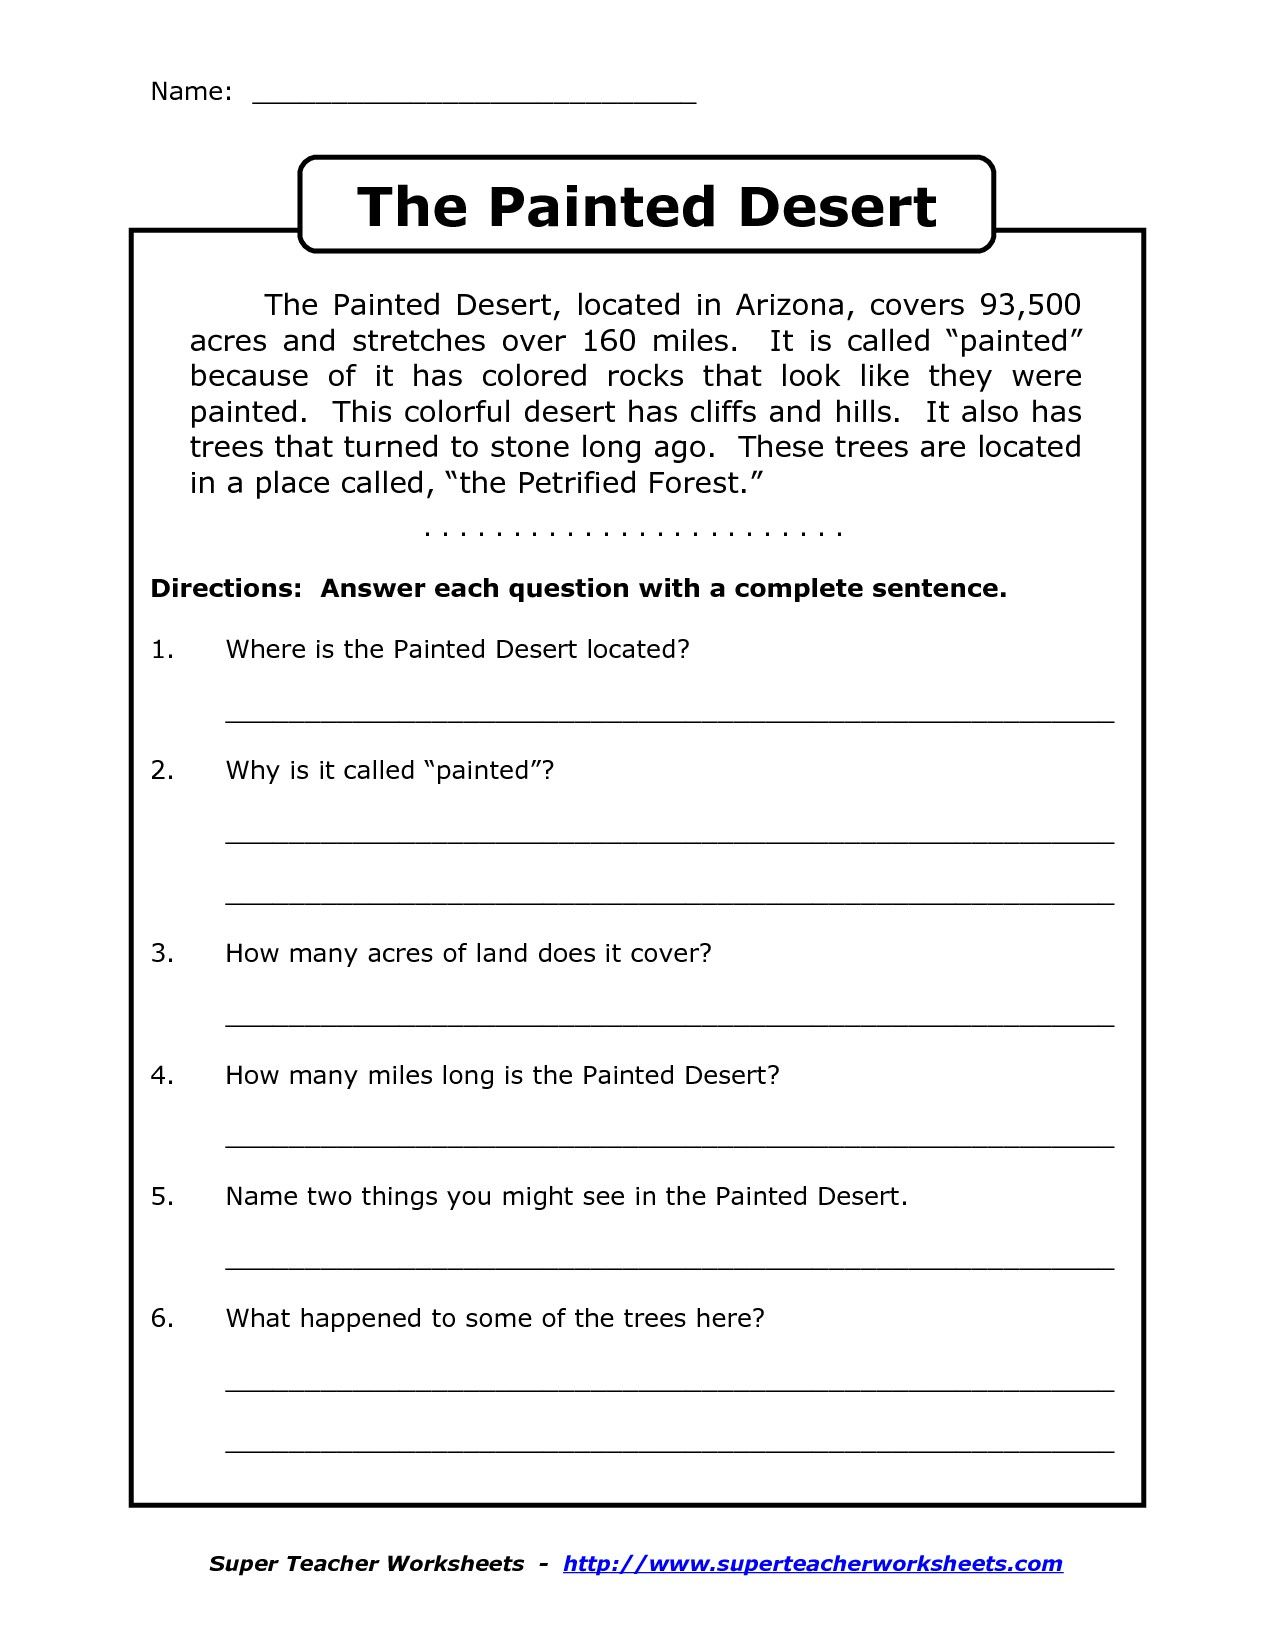 Worksheet Comprehension Passages For Grade 2 comprehension worksheet for 1st grade y2p3 the painted desert arizona